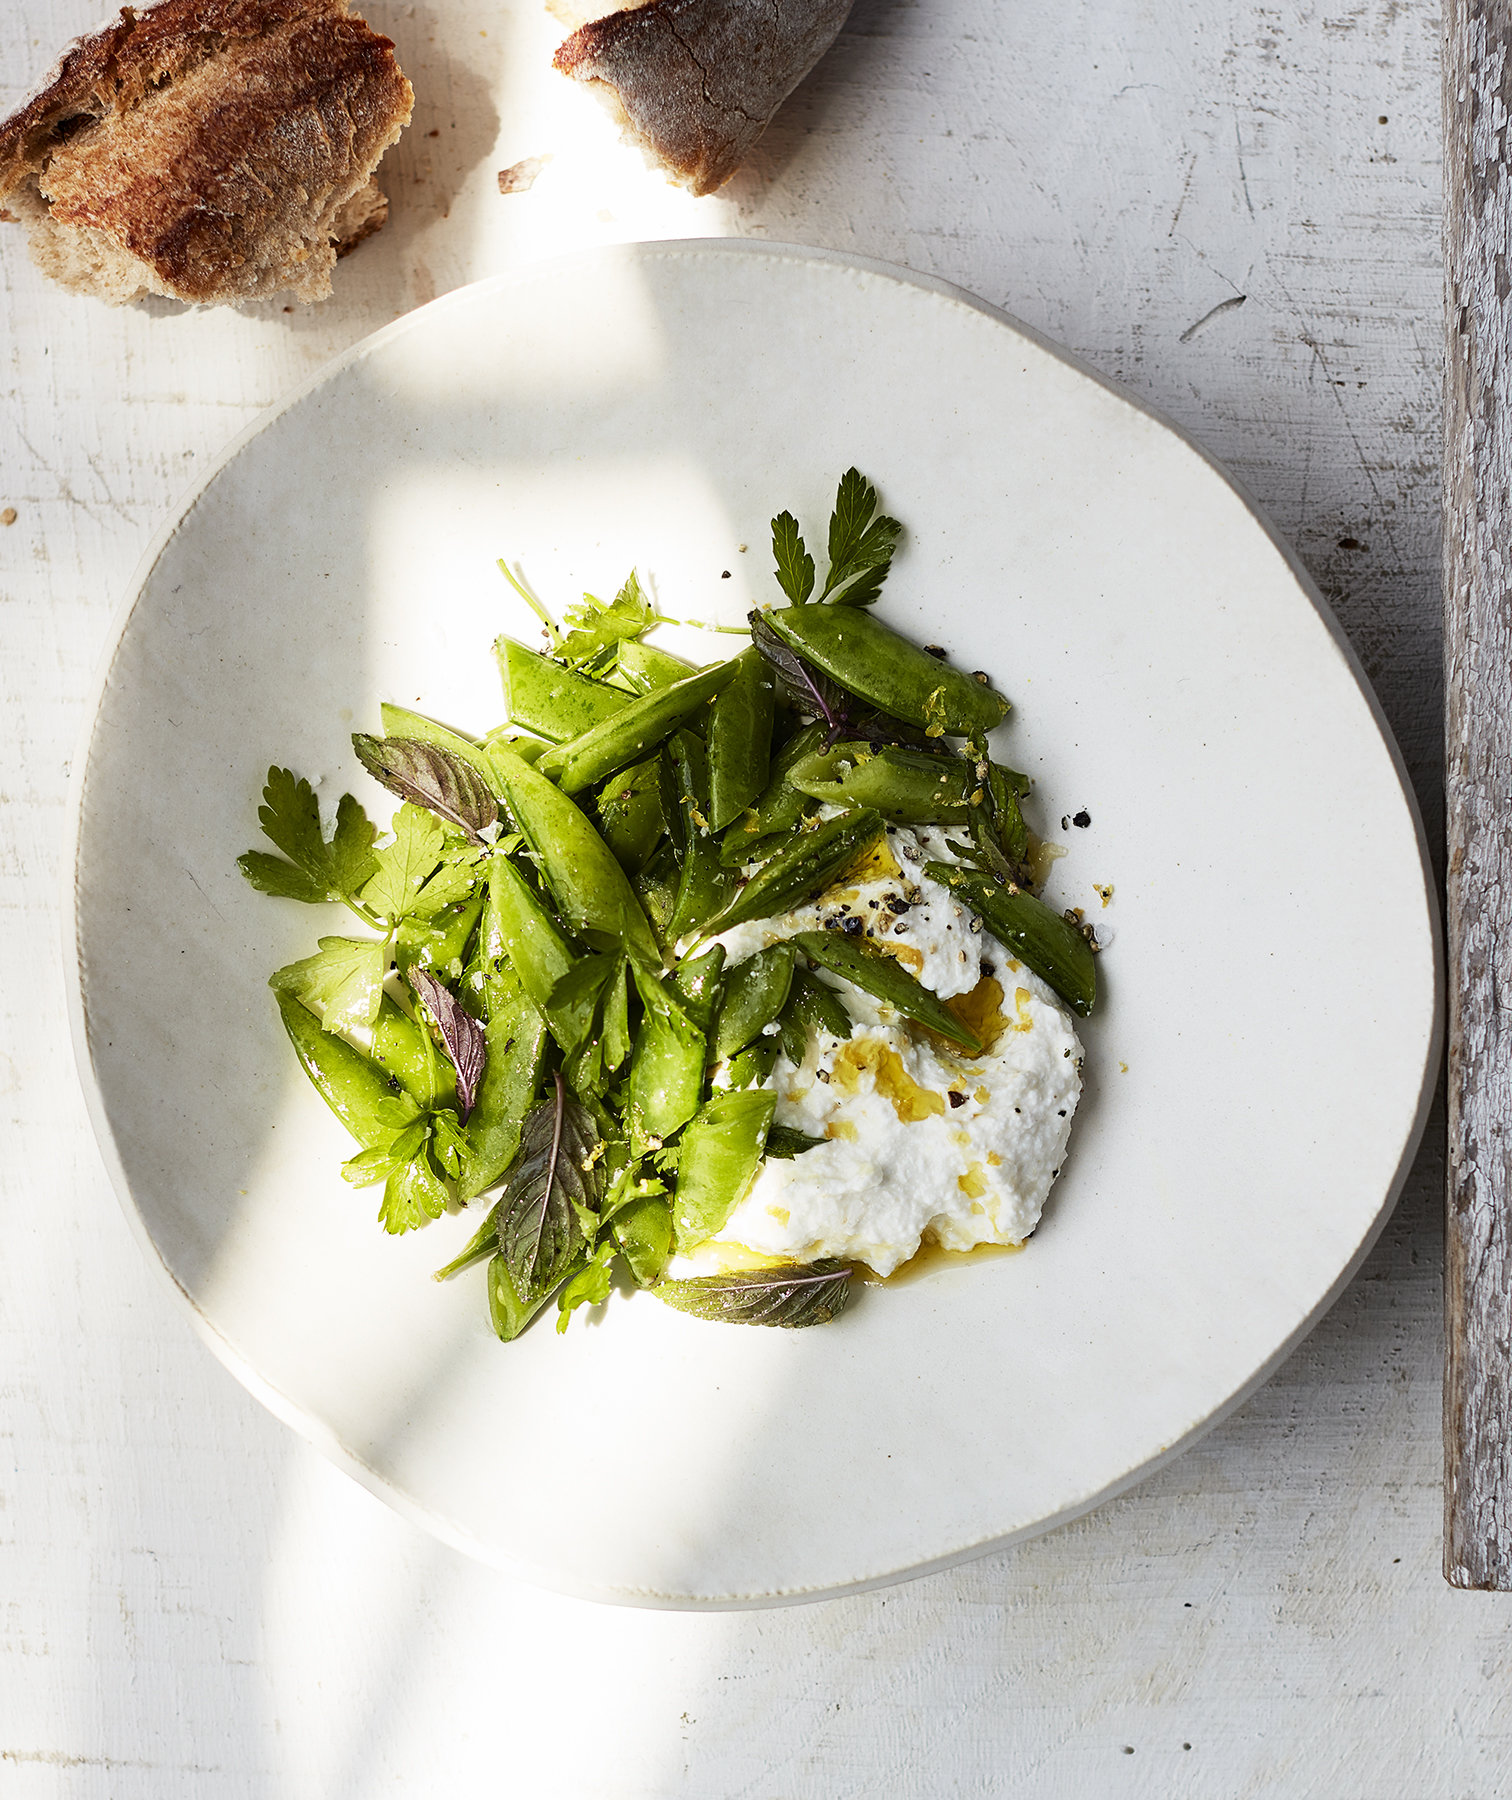 snap-peas-lemon-ricotta-mint-parsley